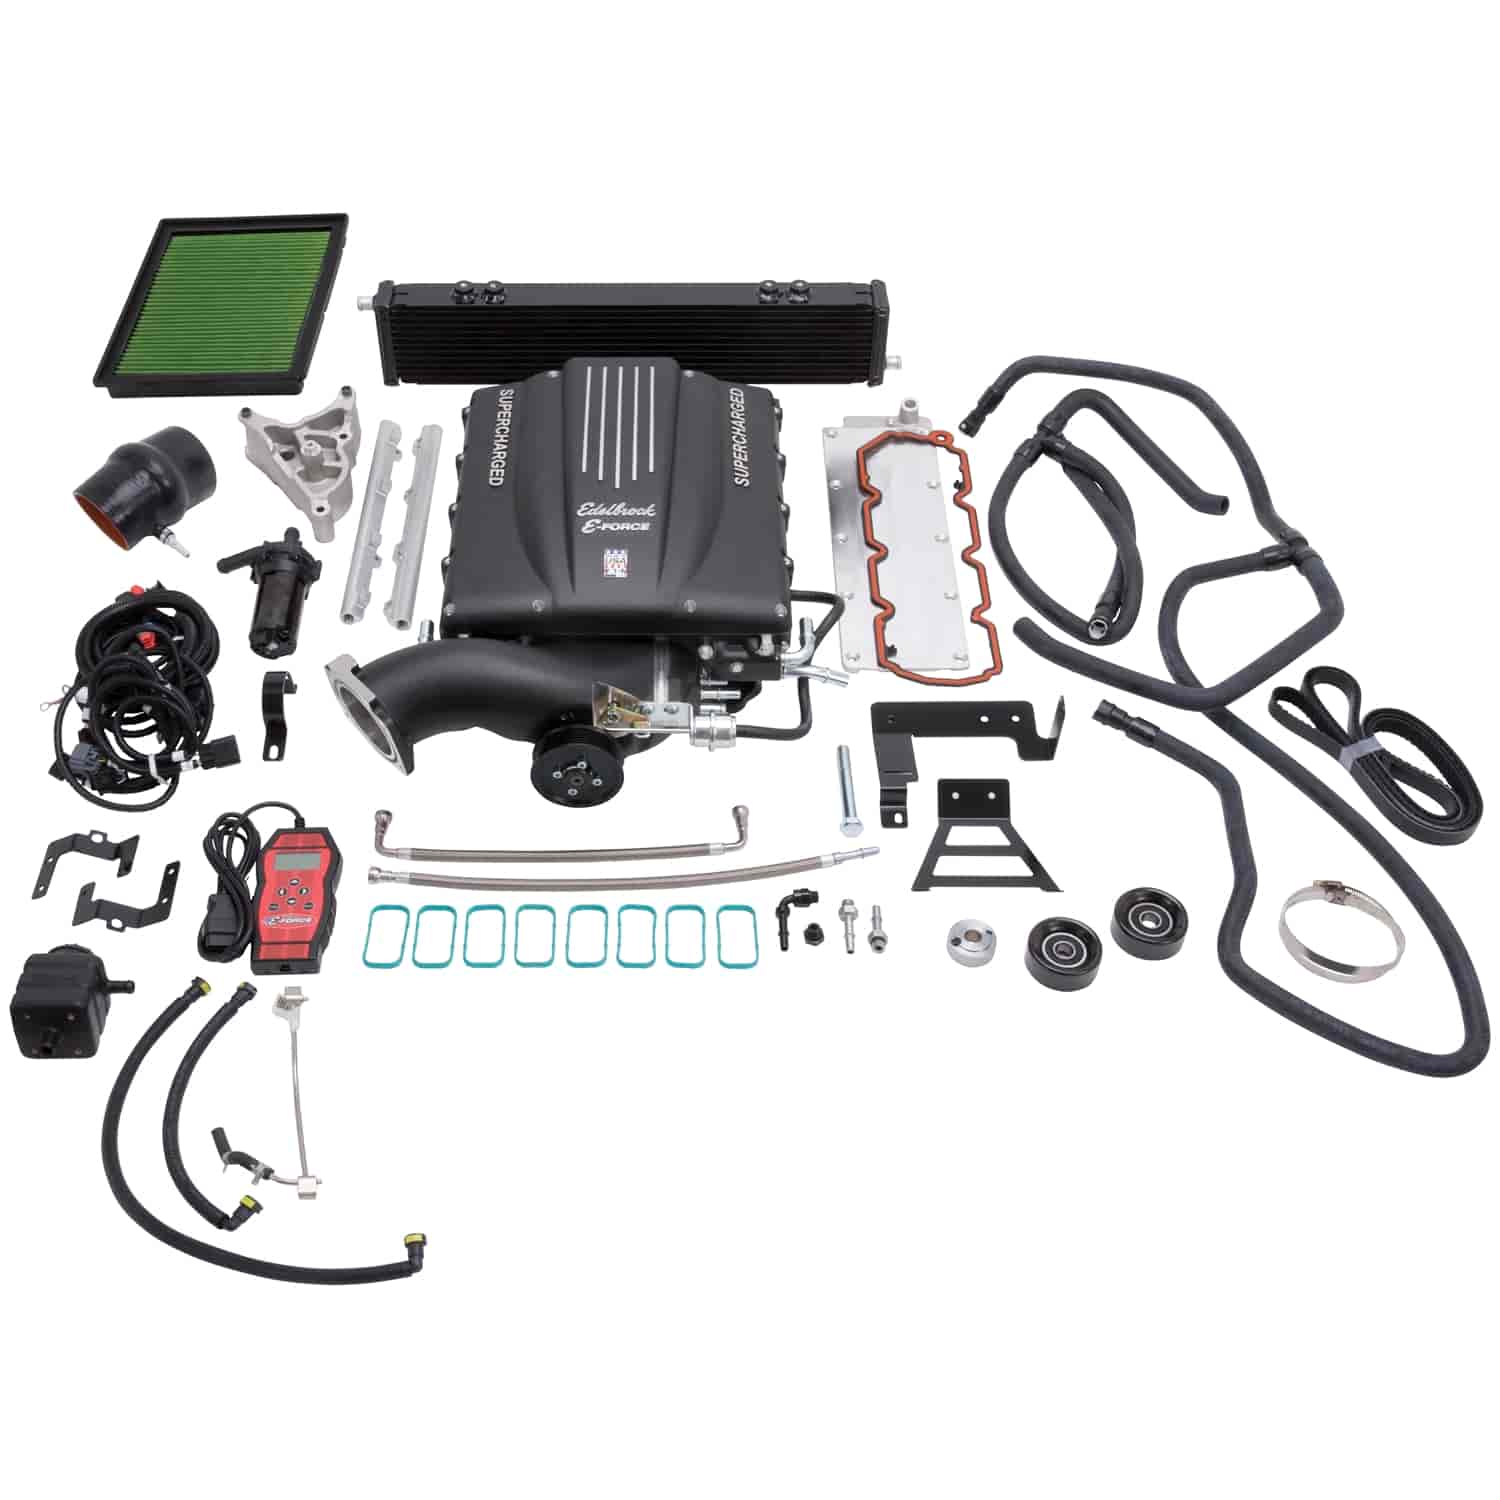 Edelbrock 1567 E Force Supercharger Kit 2007 2014 Gm Suv 62l Gen 1950 Cadillac Reproduction Wiring Harness